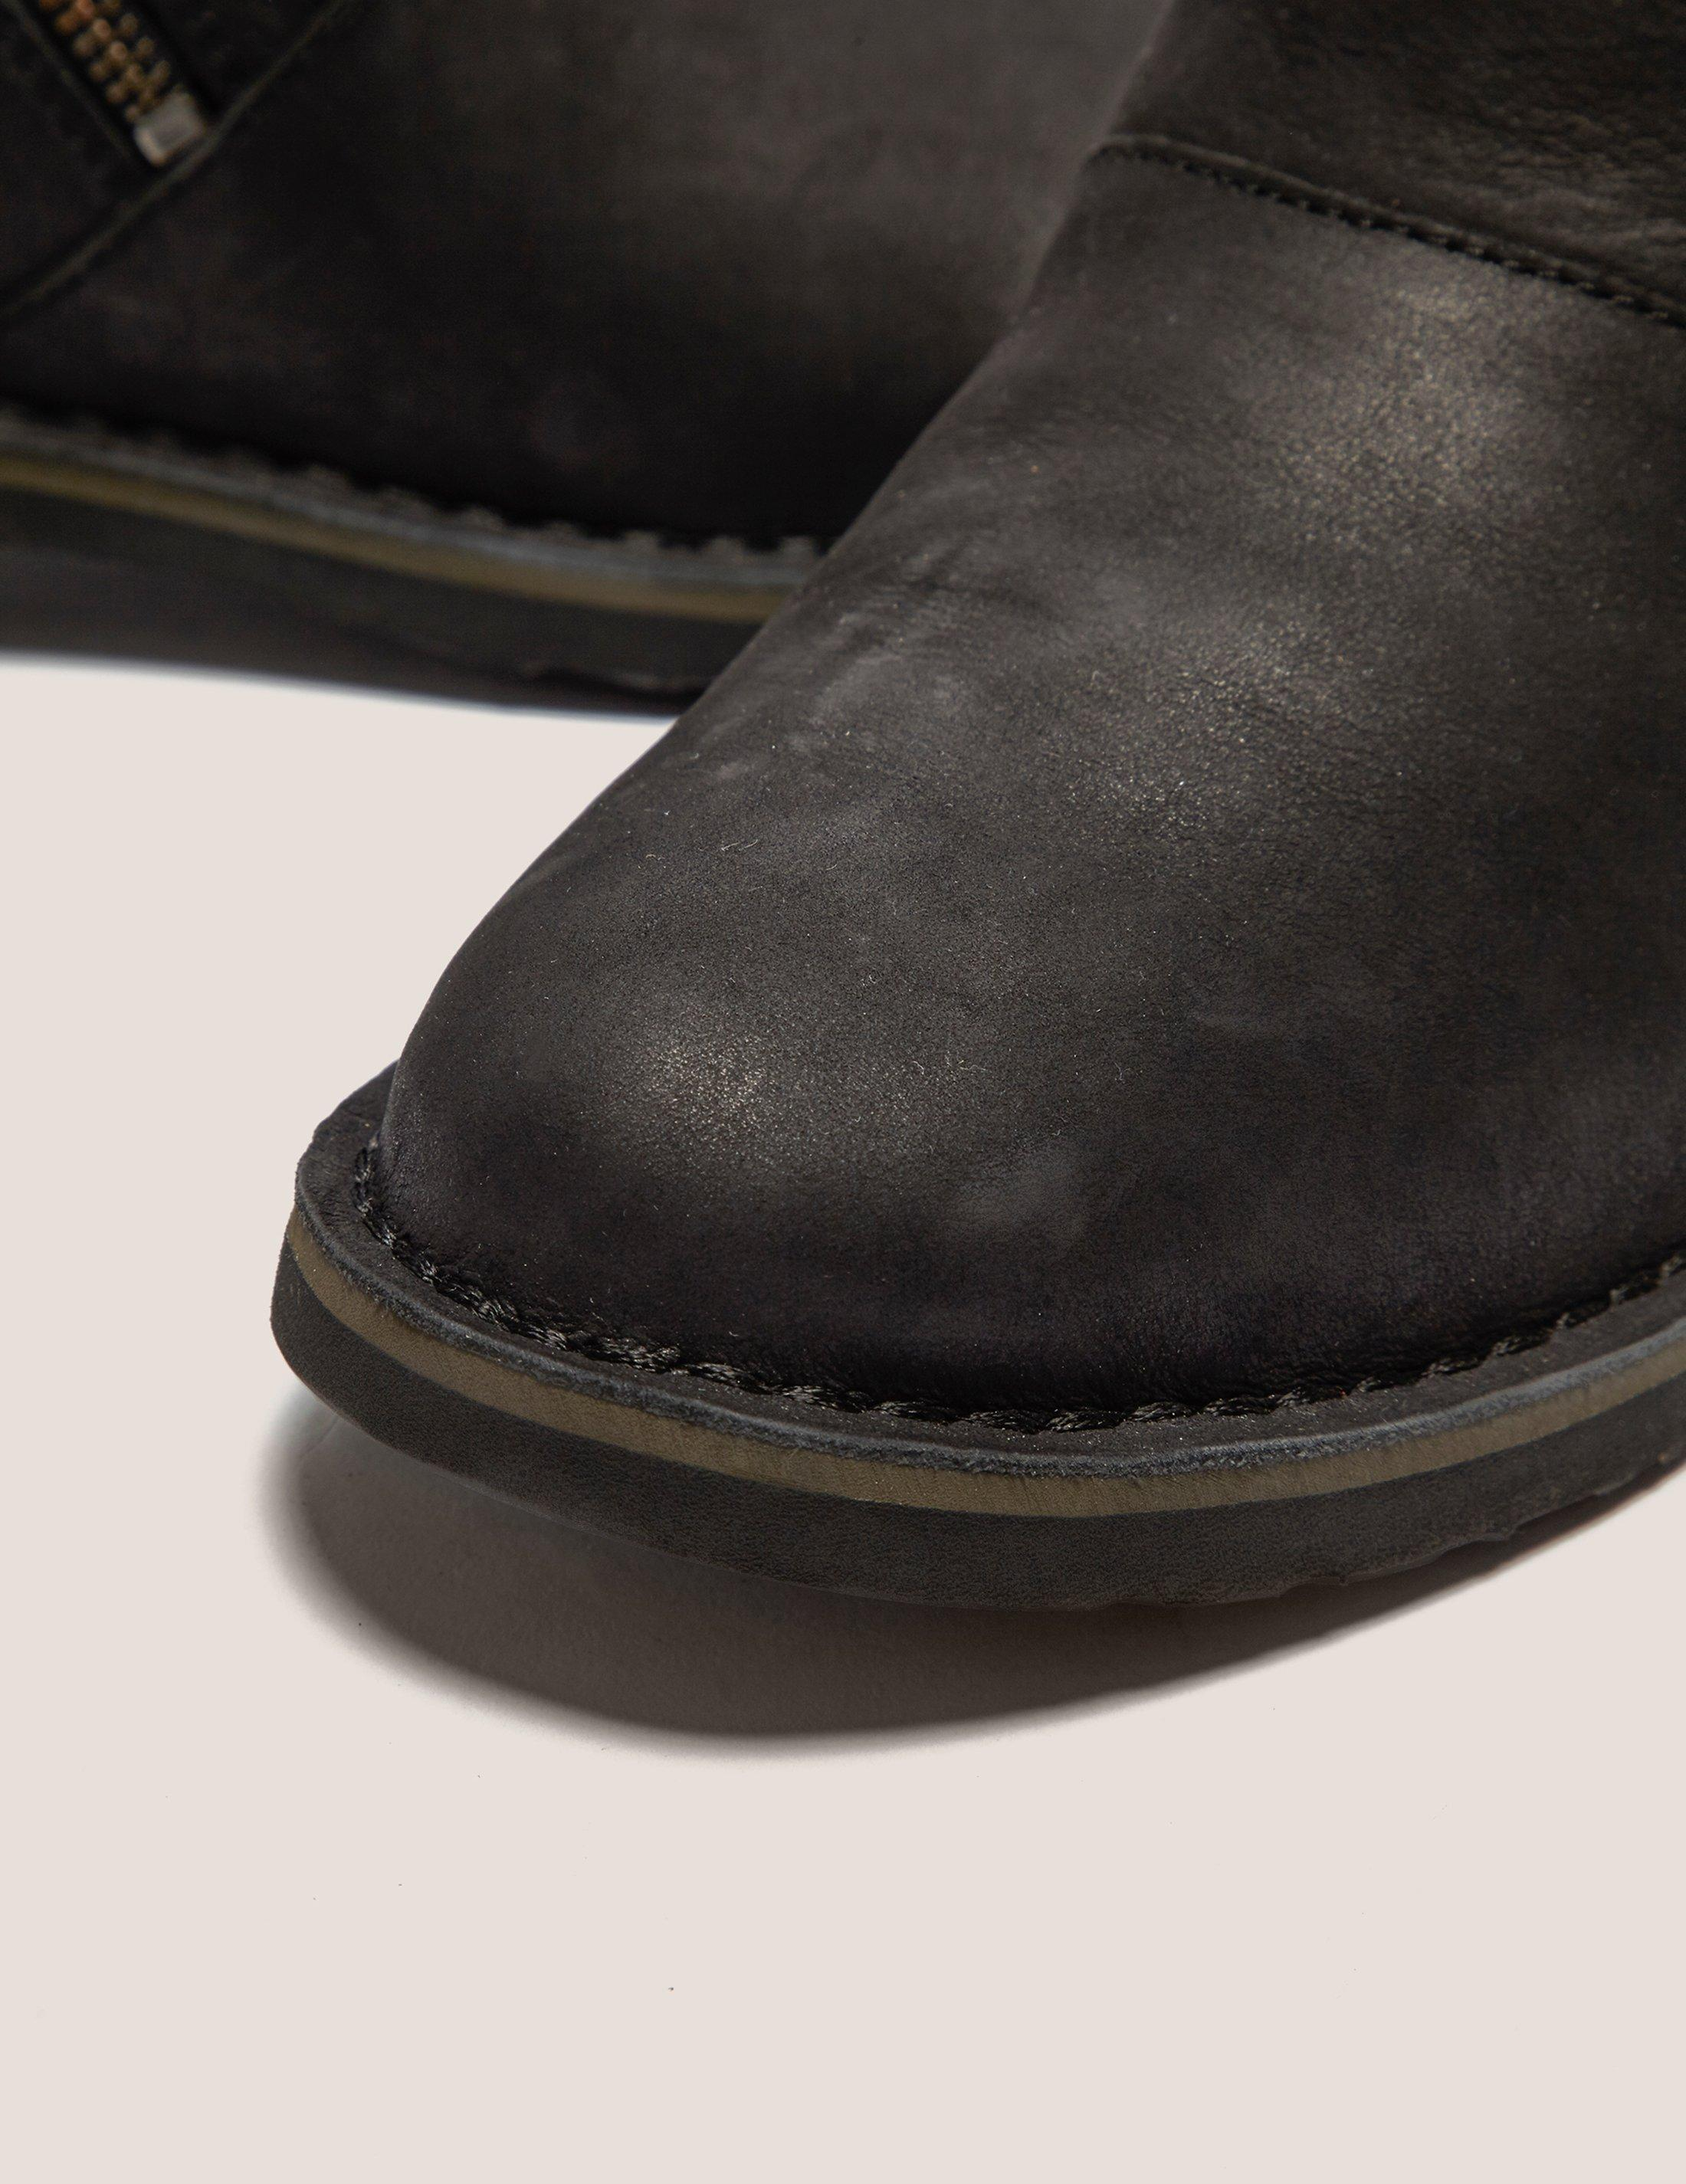 UGG Kayel Boots in Black